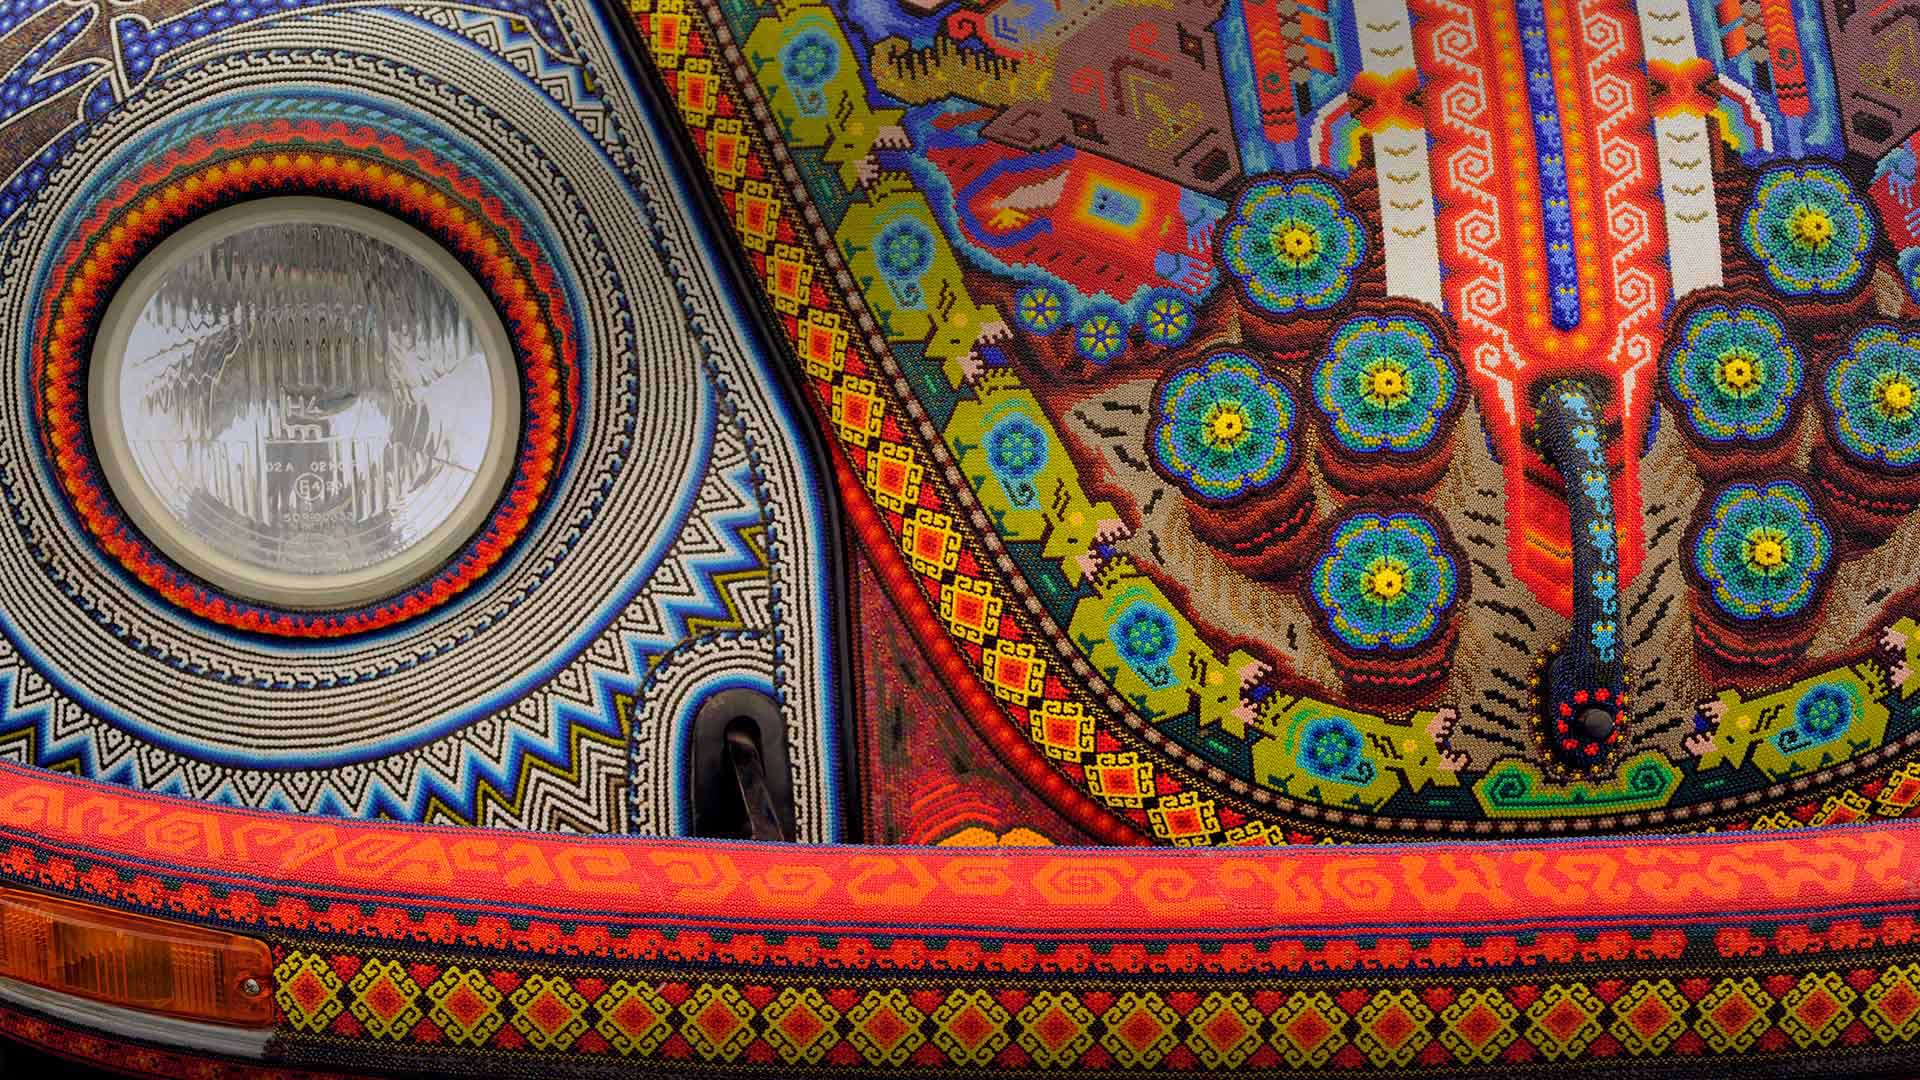 The Vochol, a Volkswagen Beetle decorated with traditional Huichol beadwork (© Helen H. Richardson/Getty Images)